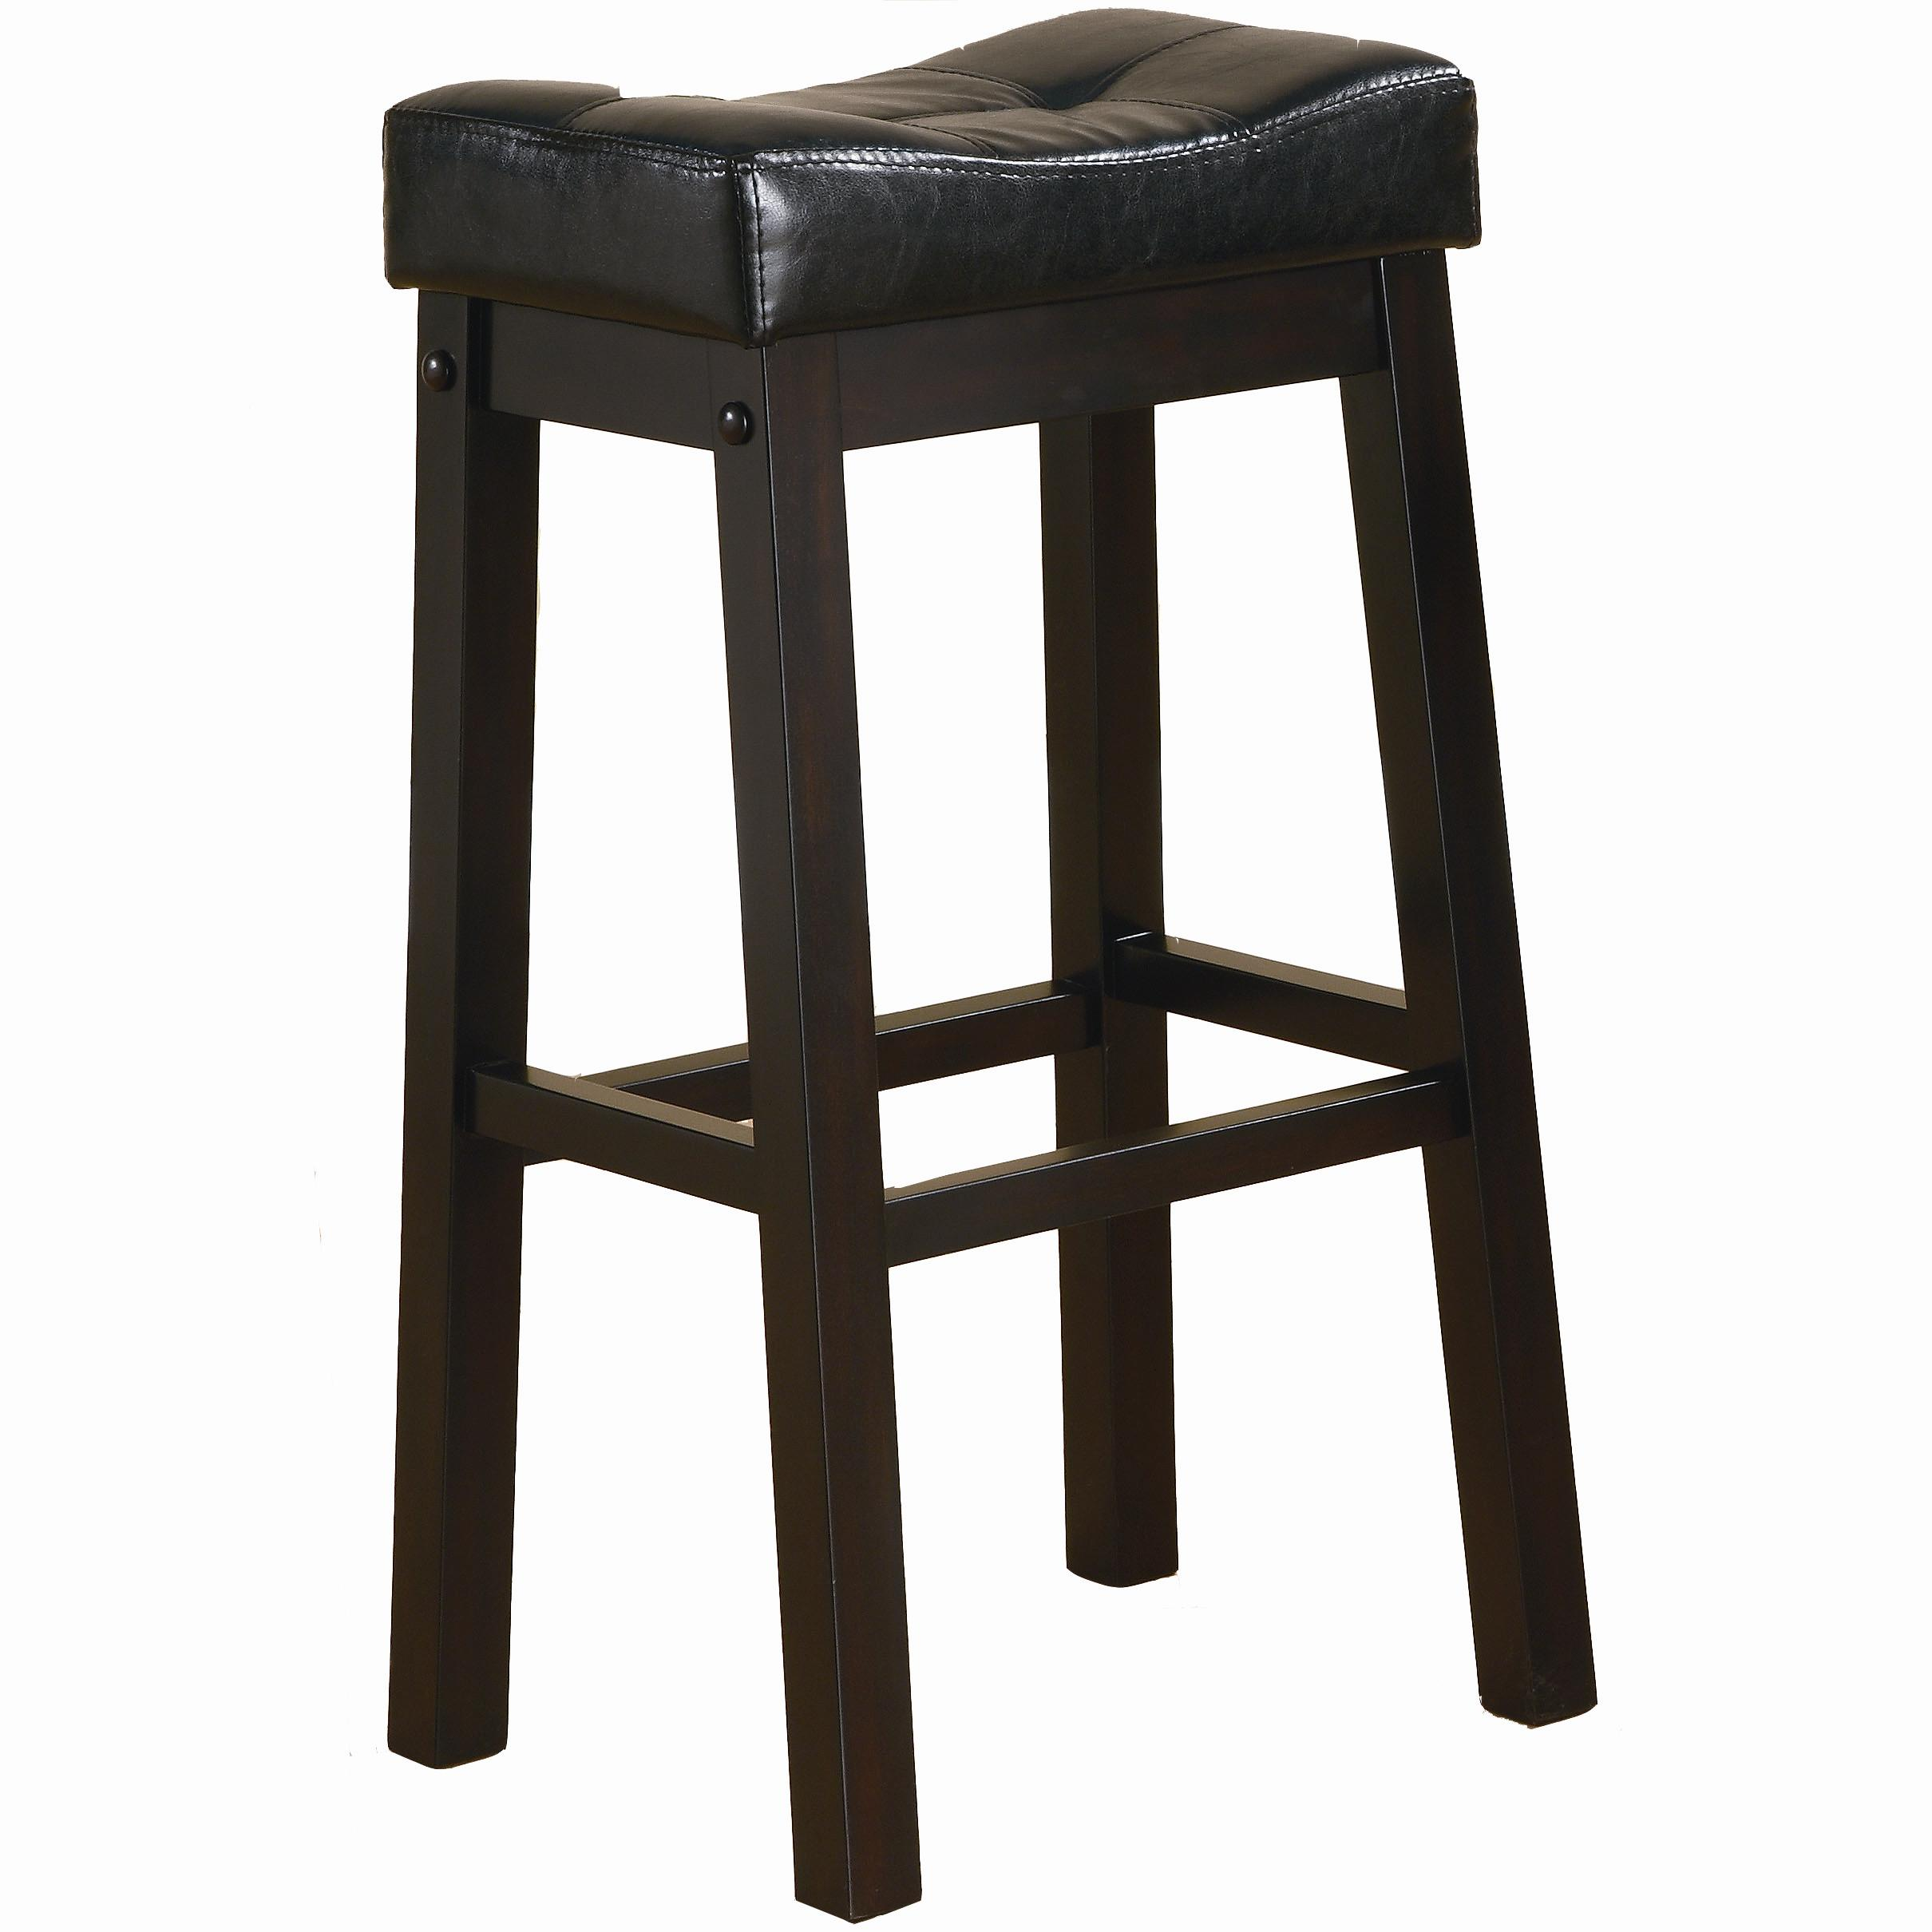 Stupendous Coaster Sofie 29 Bar Stool With Plush Upholstered Seat Theyellowbook Wood Chair Design Ideas Theyellowbookinfo